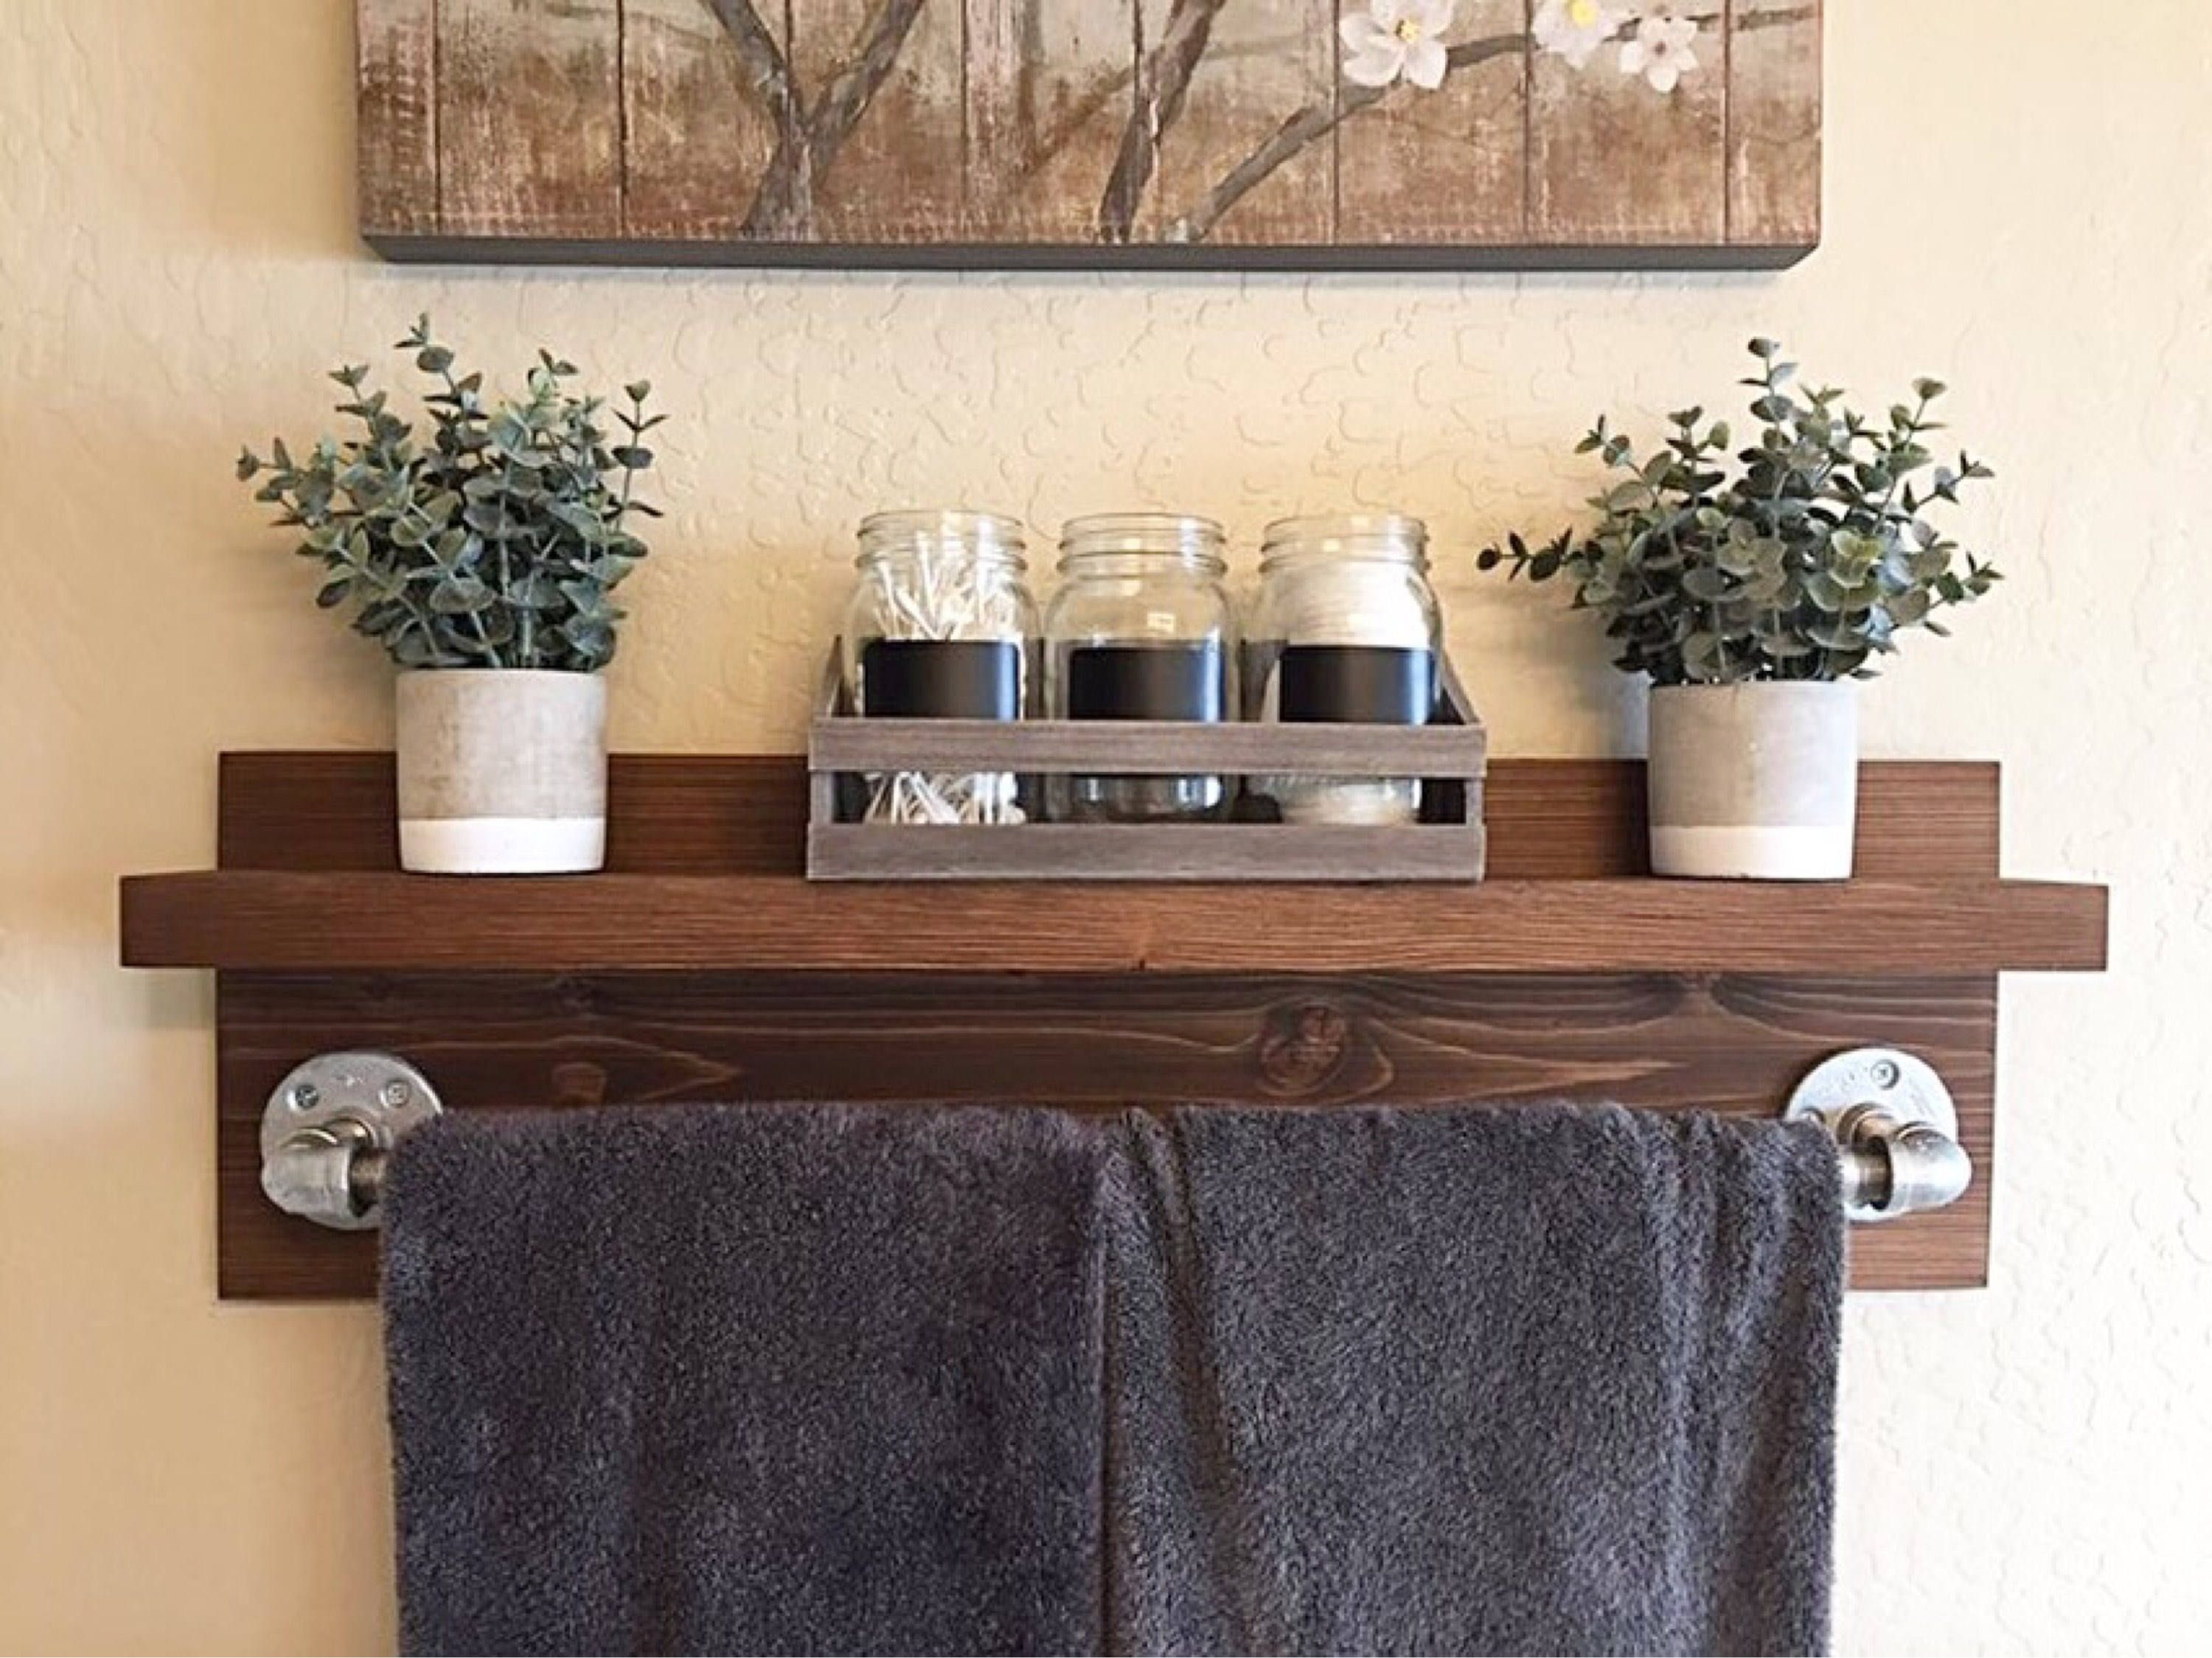 Pretentious Towel Her Bathroom Wood Bathroom Shelves Wood Bathroom Shelves Towel Her Image Result Wood Bathroom Shelves Towel Bar Image Result Wood Bathroom Shelves